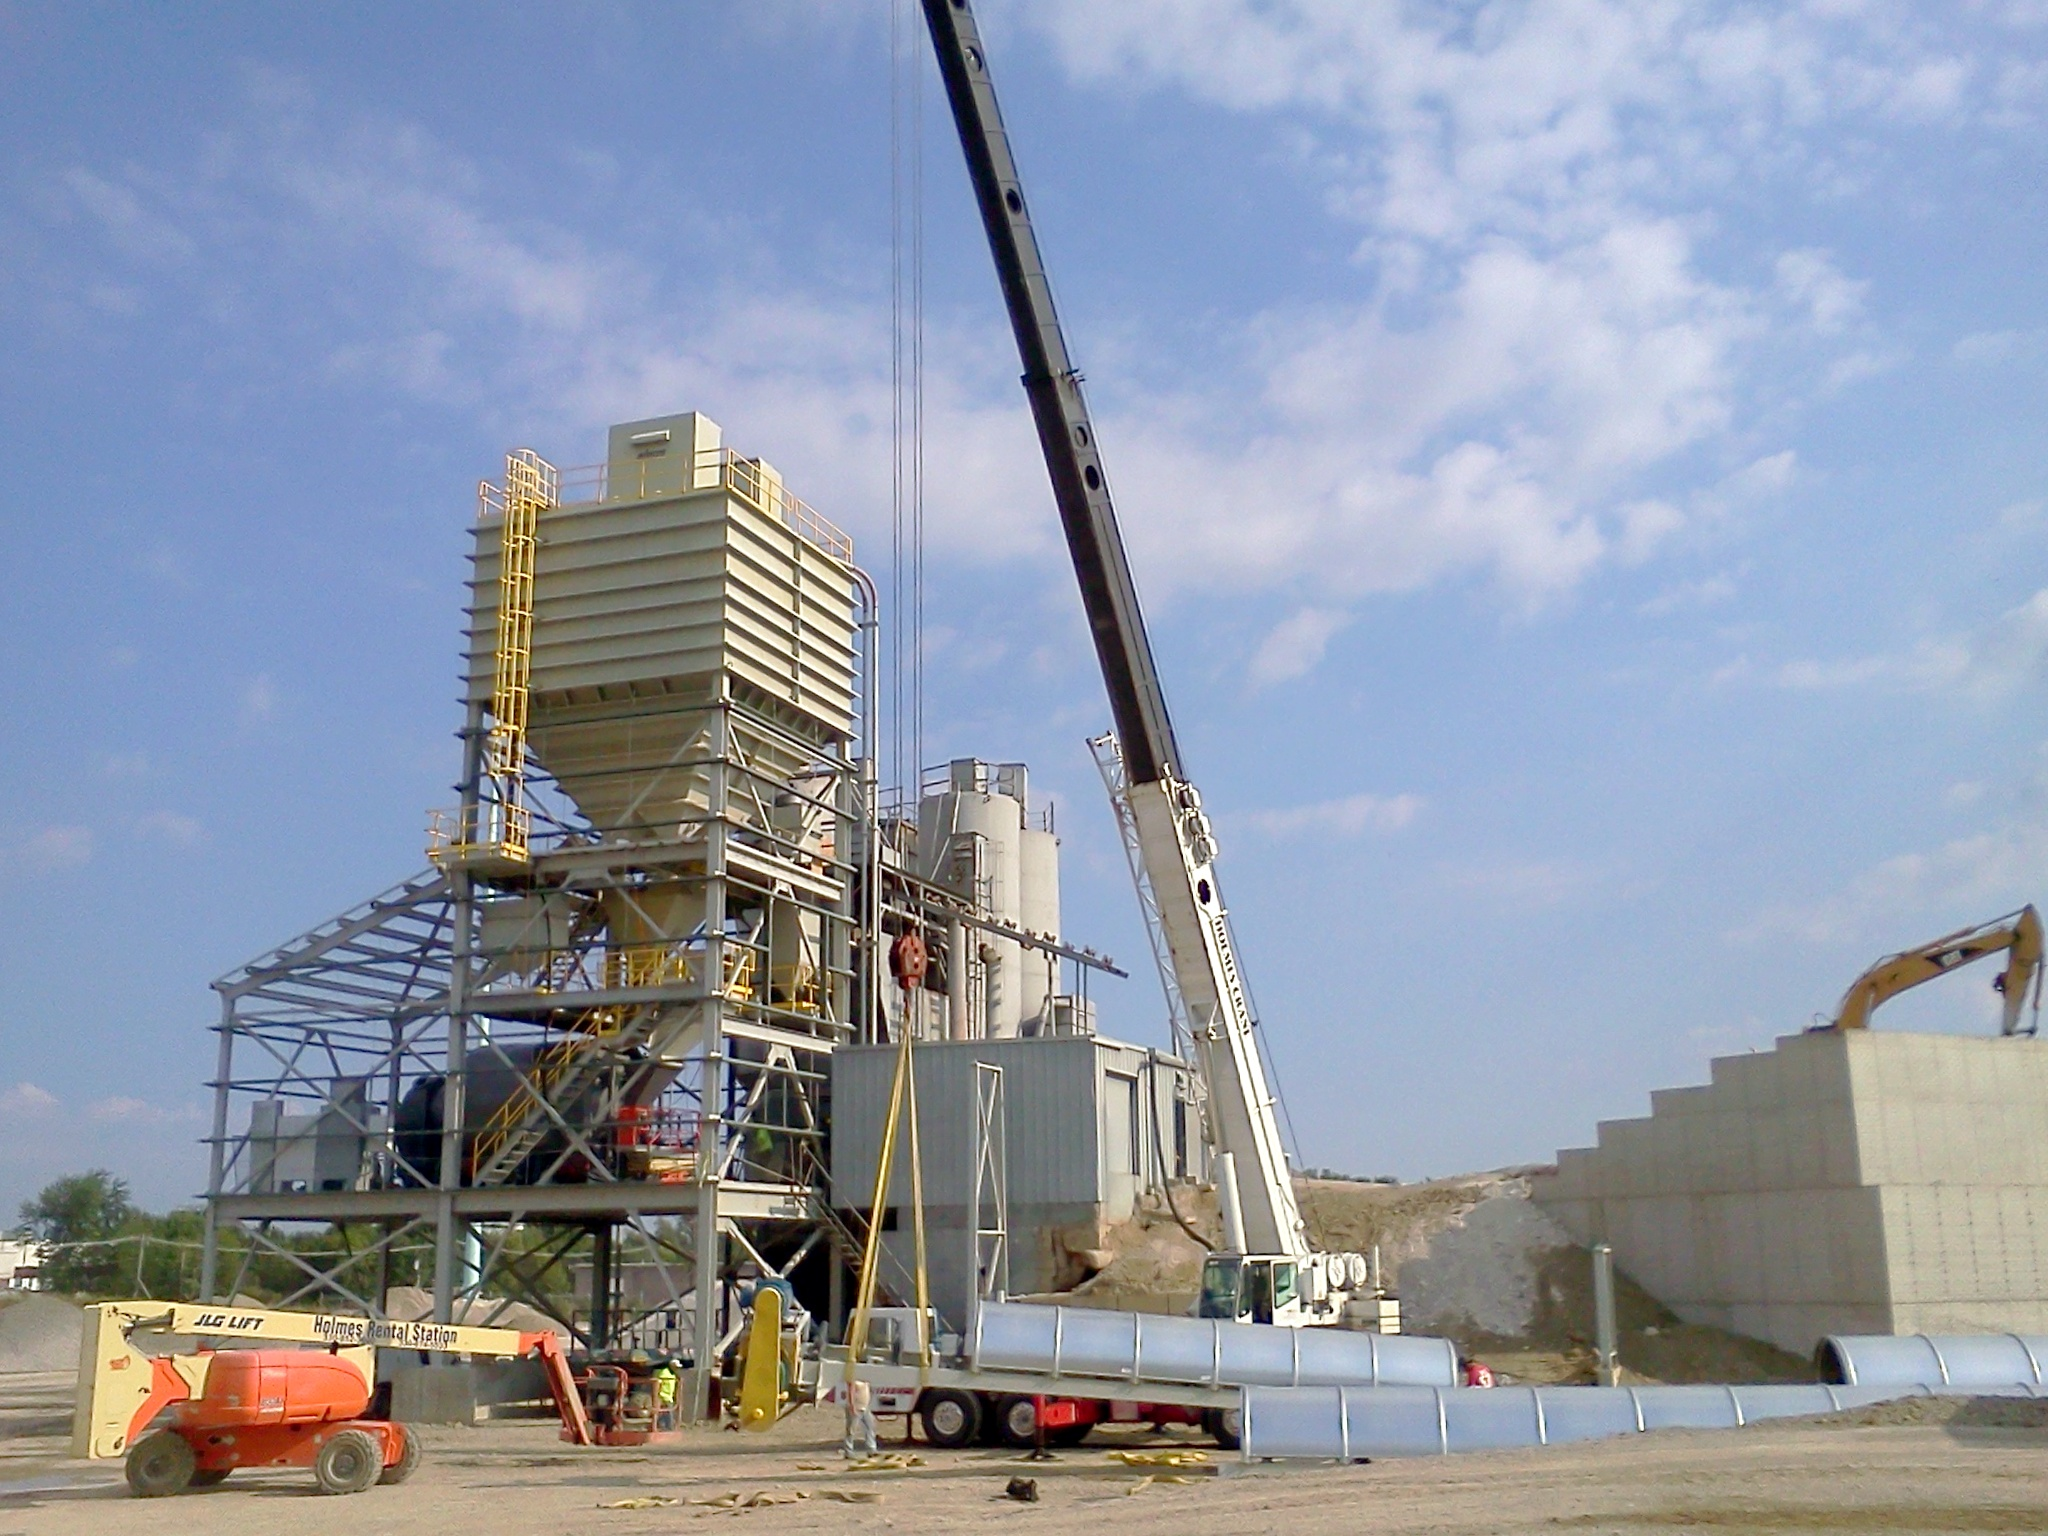 Agg Conveyor Being Set In Place